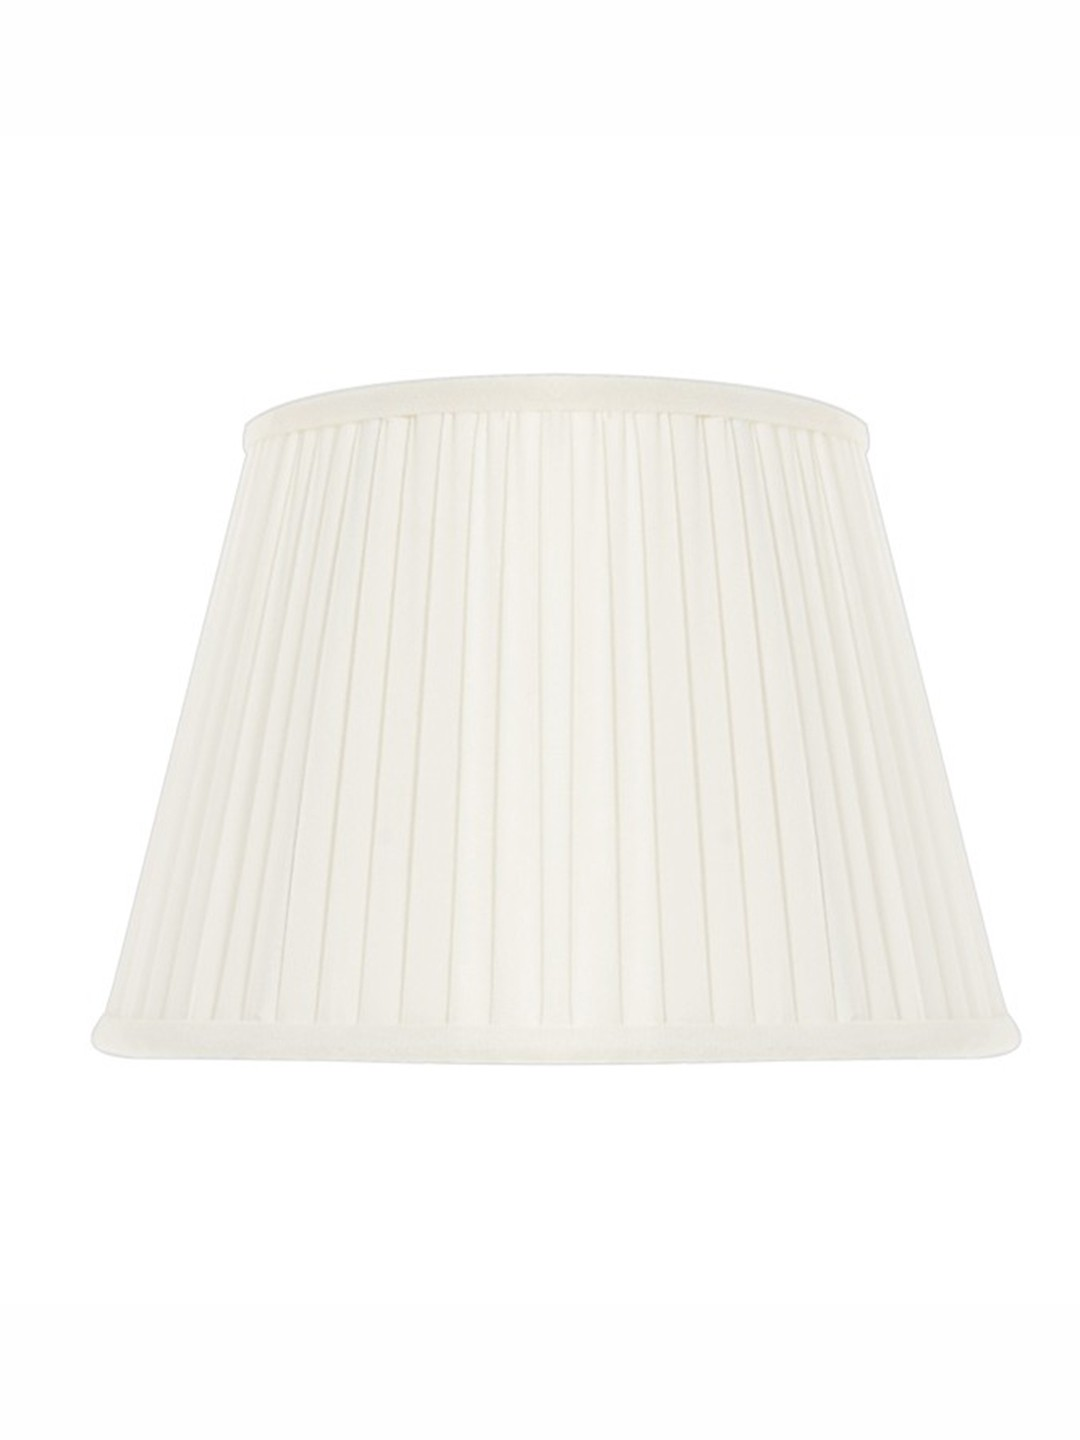 Chiffon Pleated Taper Shade